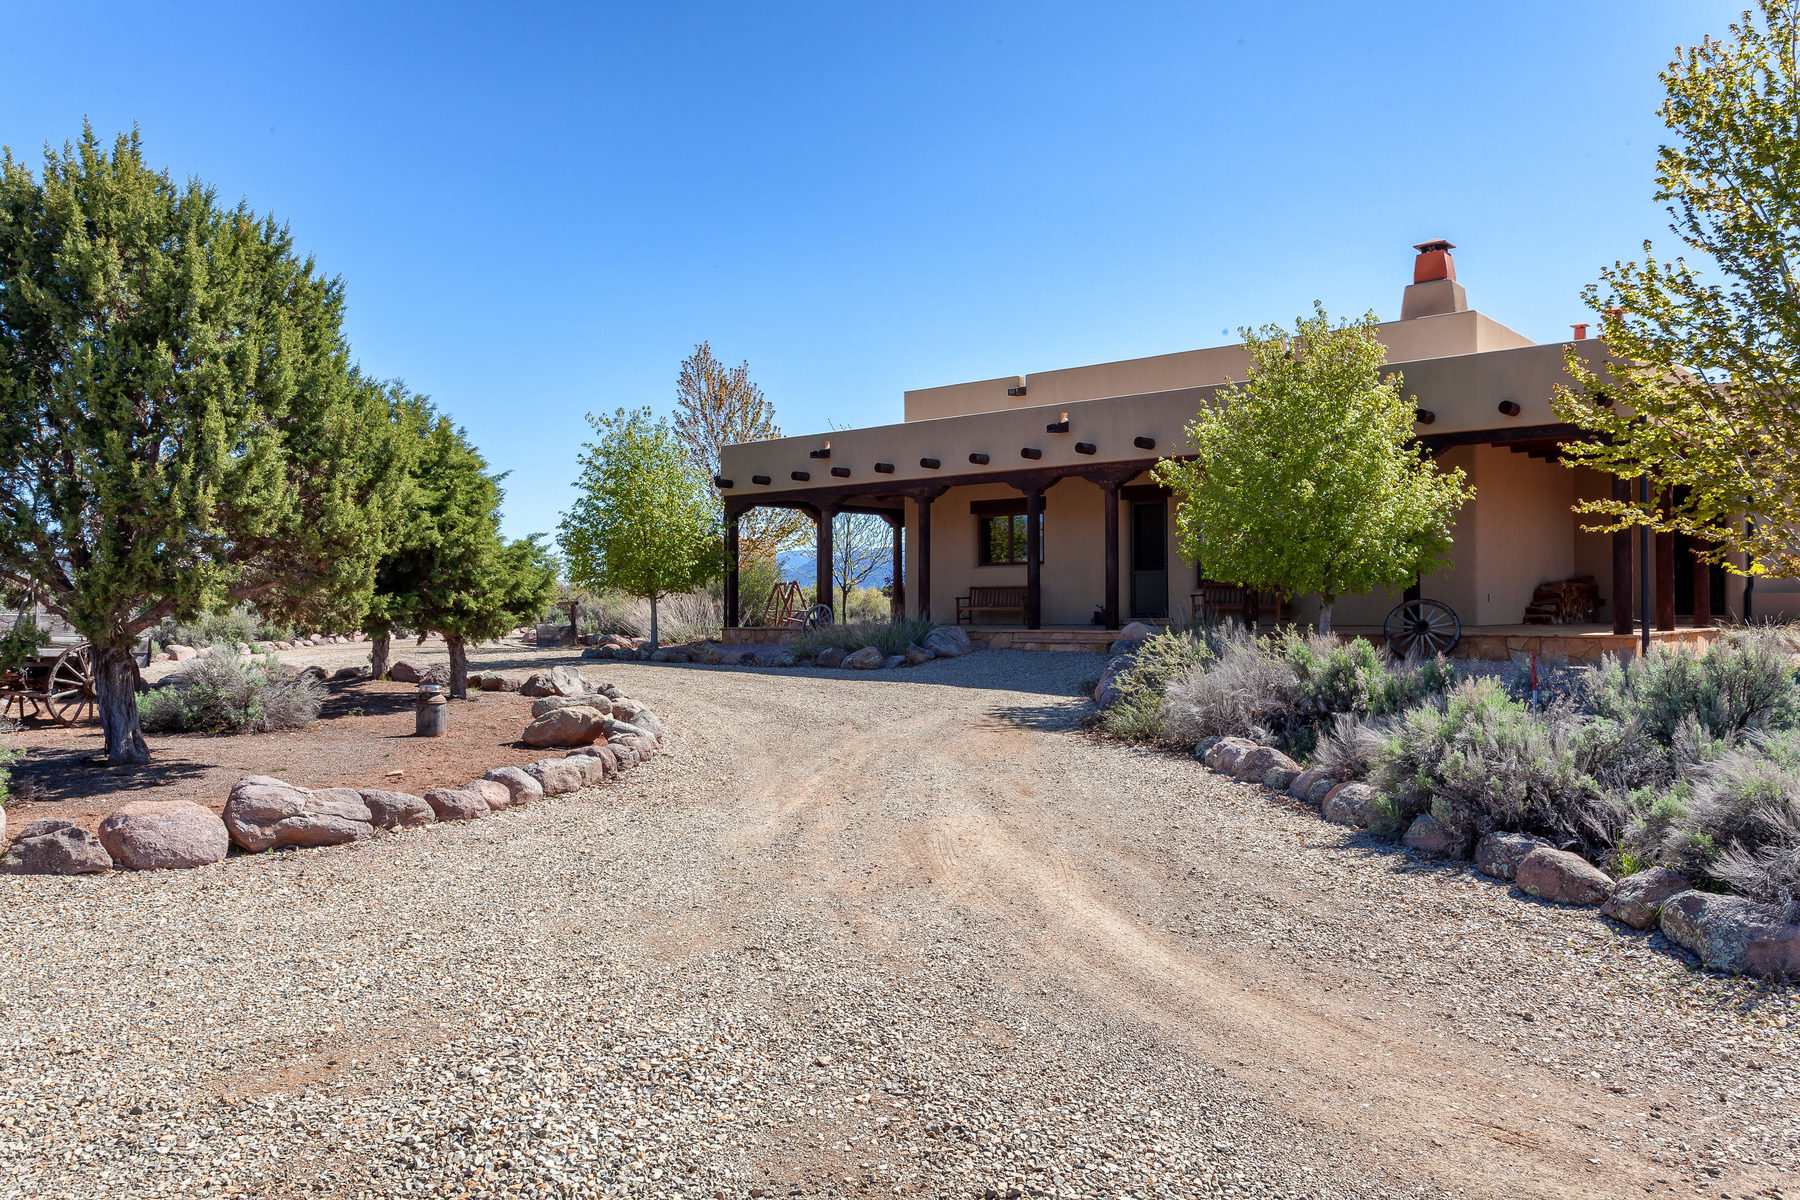 Single Family Home for Sale at Equestrian Paradise with Zion's Kolob Canyon Views 755 S 1500 E New Harmony, Utah, 84757 United States